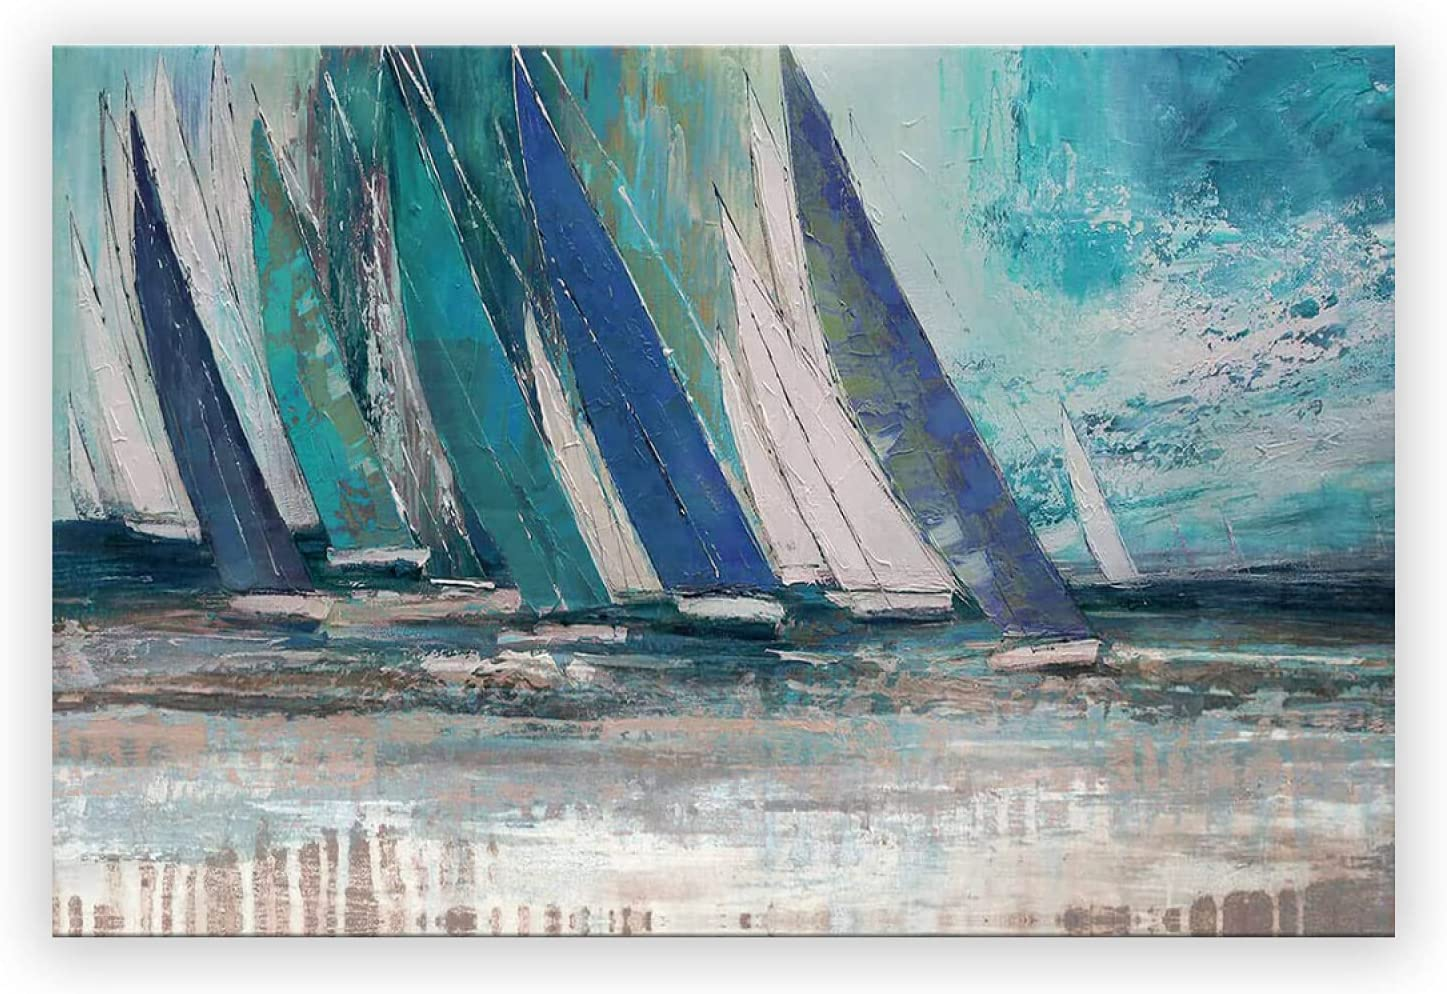 Sailboat Ocean Nautical Canvas Wall Art Room Grey Blue And Aqua Artwork Home Landscape Wall Painting Scenery Bedroom Kitchen Decor Above Bed Pictures For Living Room Frameless 24X 36 Inch